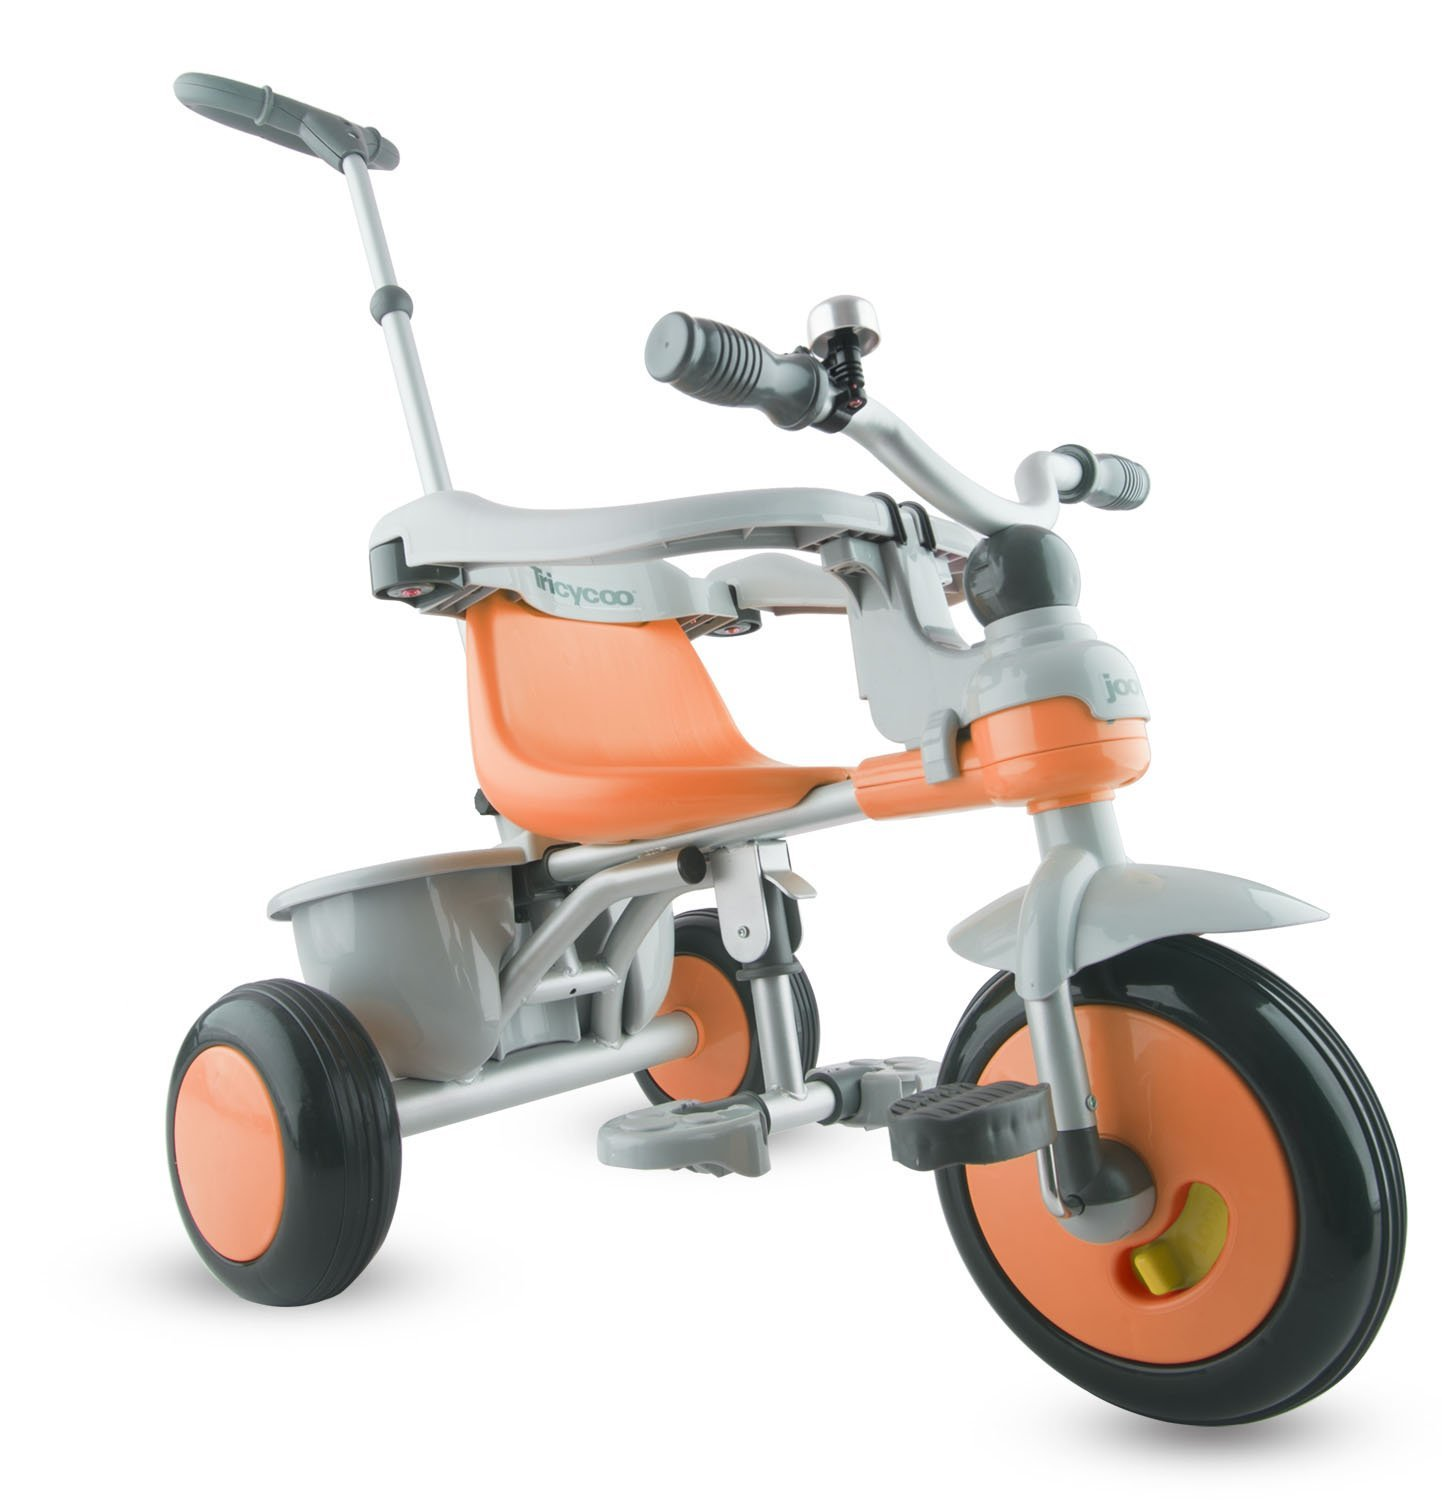 Joovy Tricycoo Toddler Tricycle Outdoor Trike Ride for Toddlers 18+ Mo, Orangie